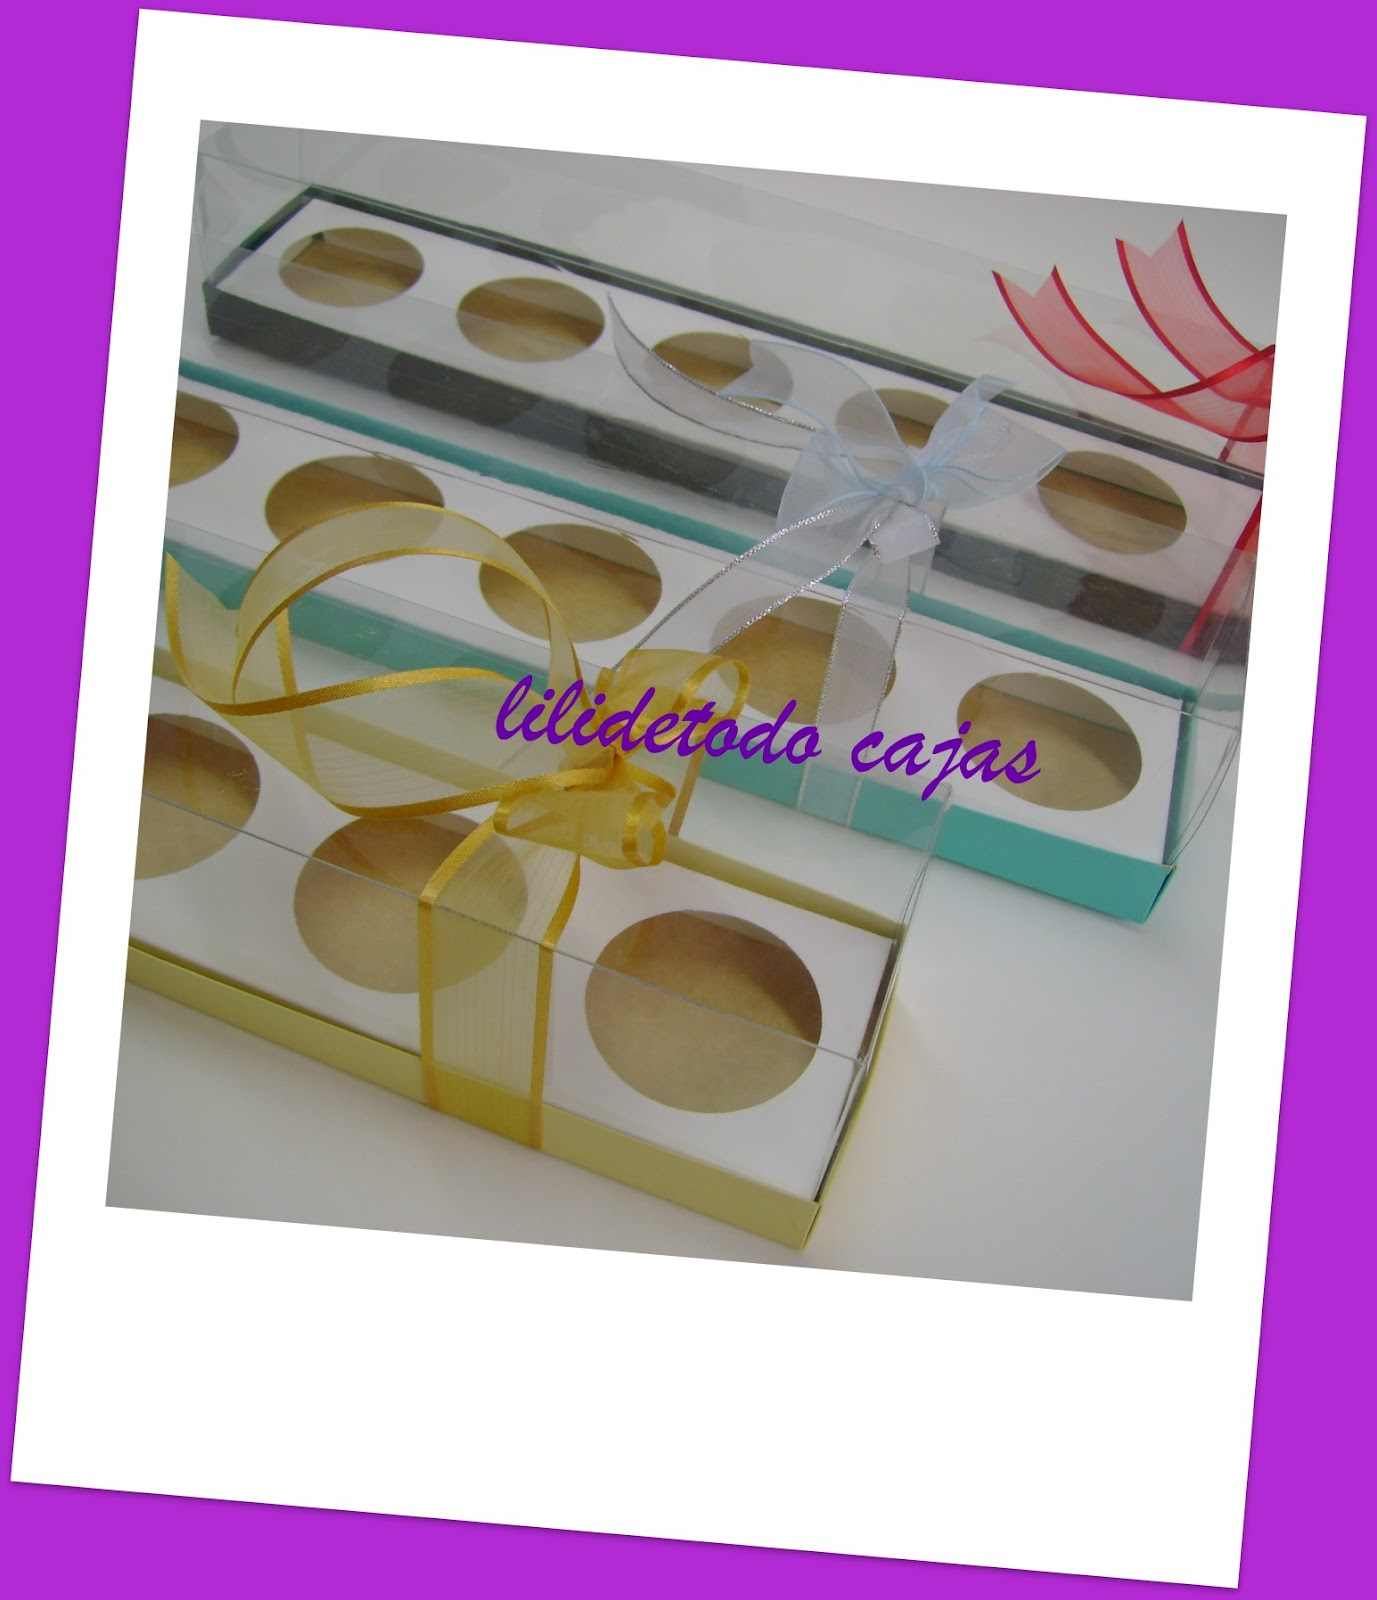 Cajas Cupcakes Plantilla Wallpapers Real Madrid   Genuardis Portal